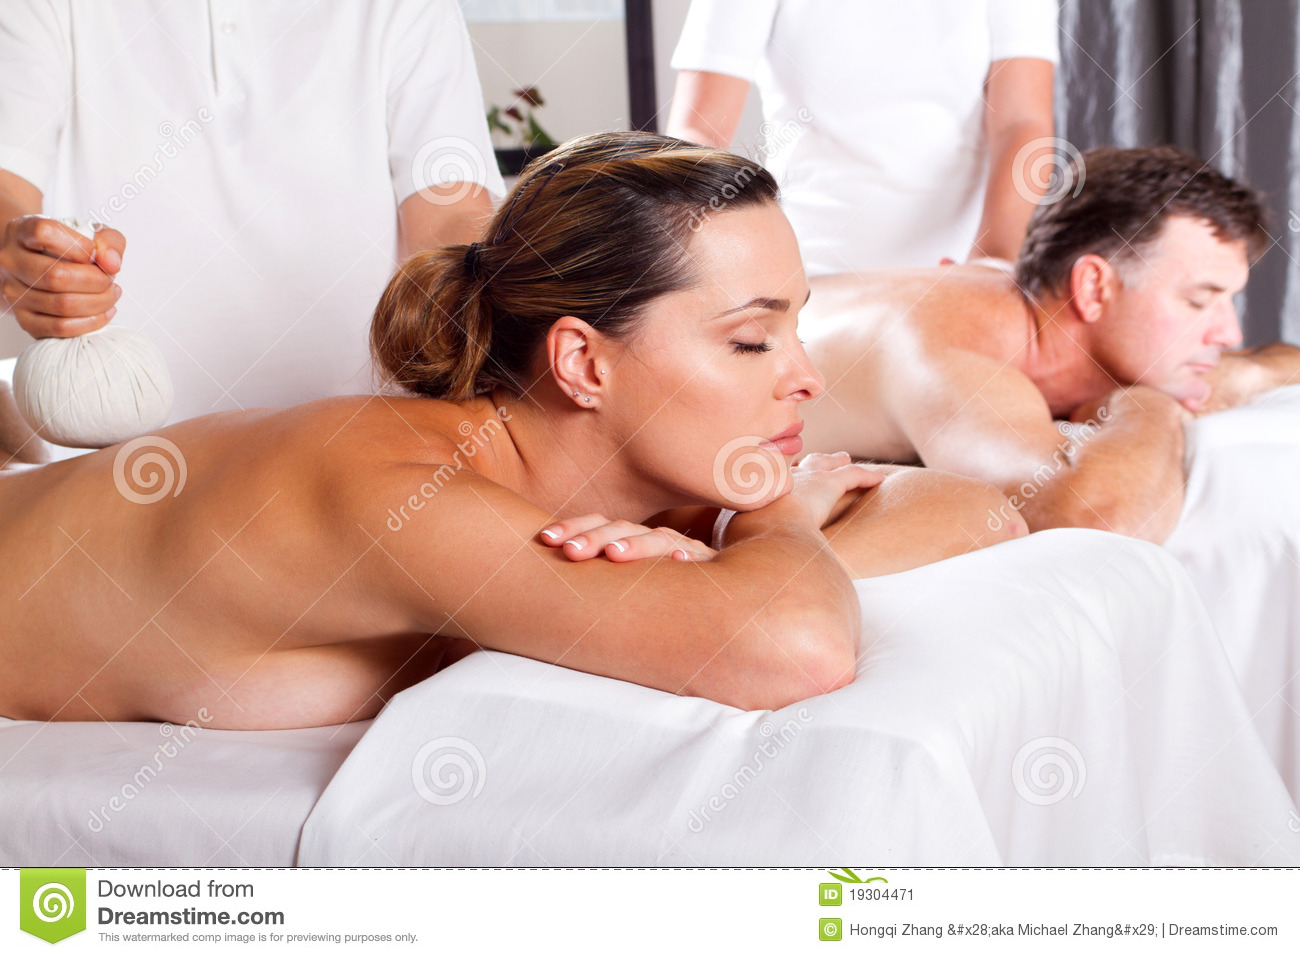 men massaging women